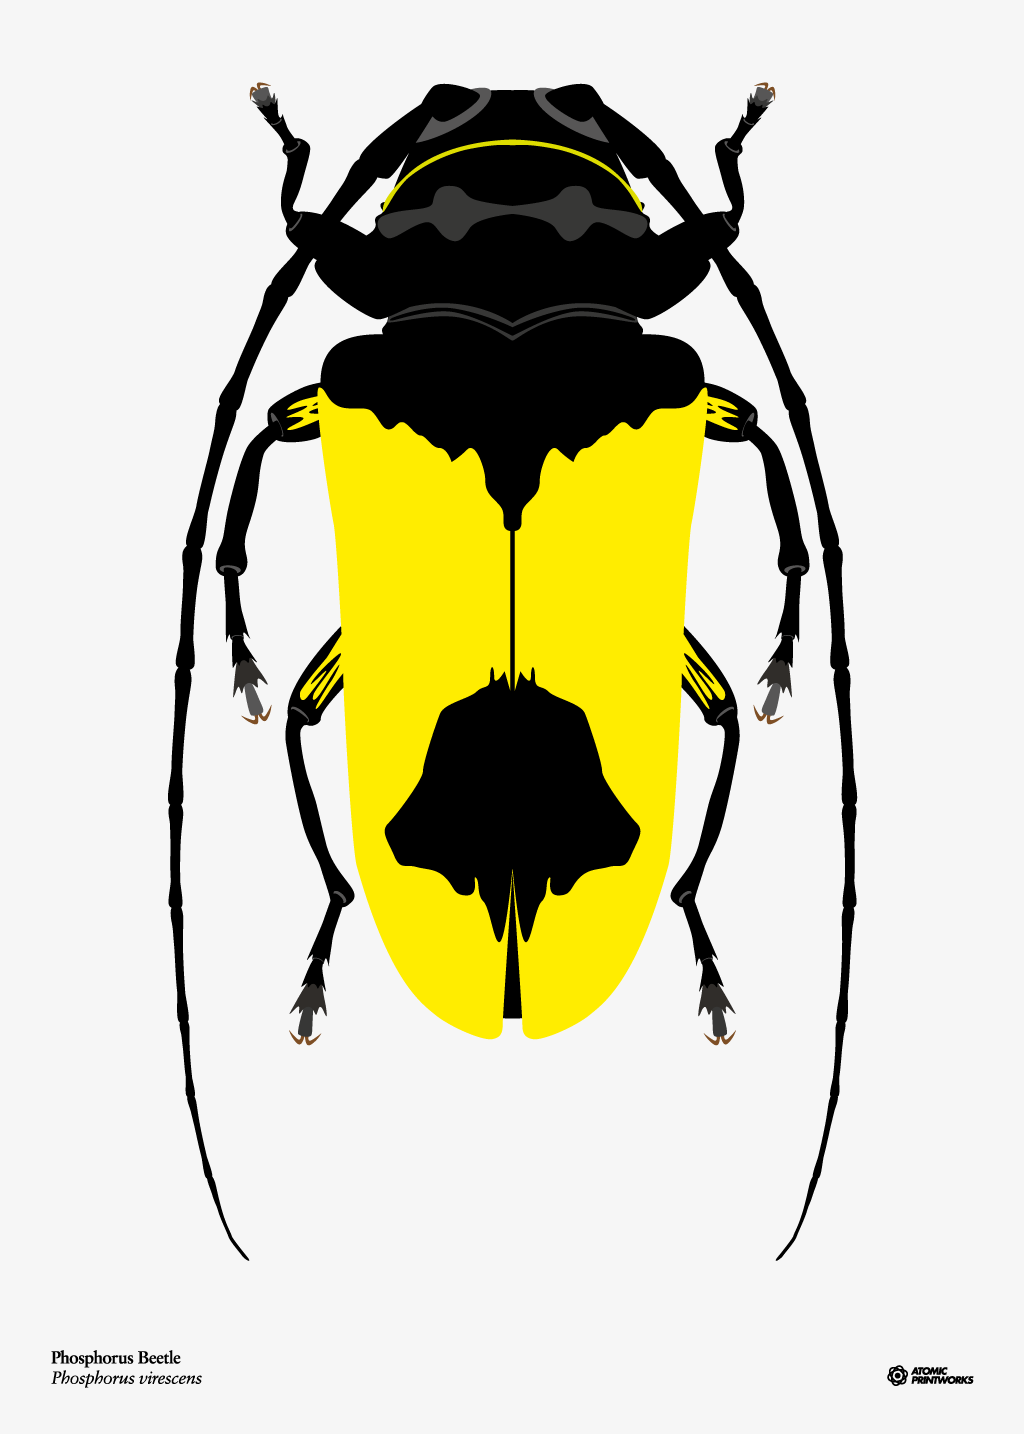 Phosphorus beetle print